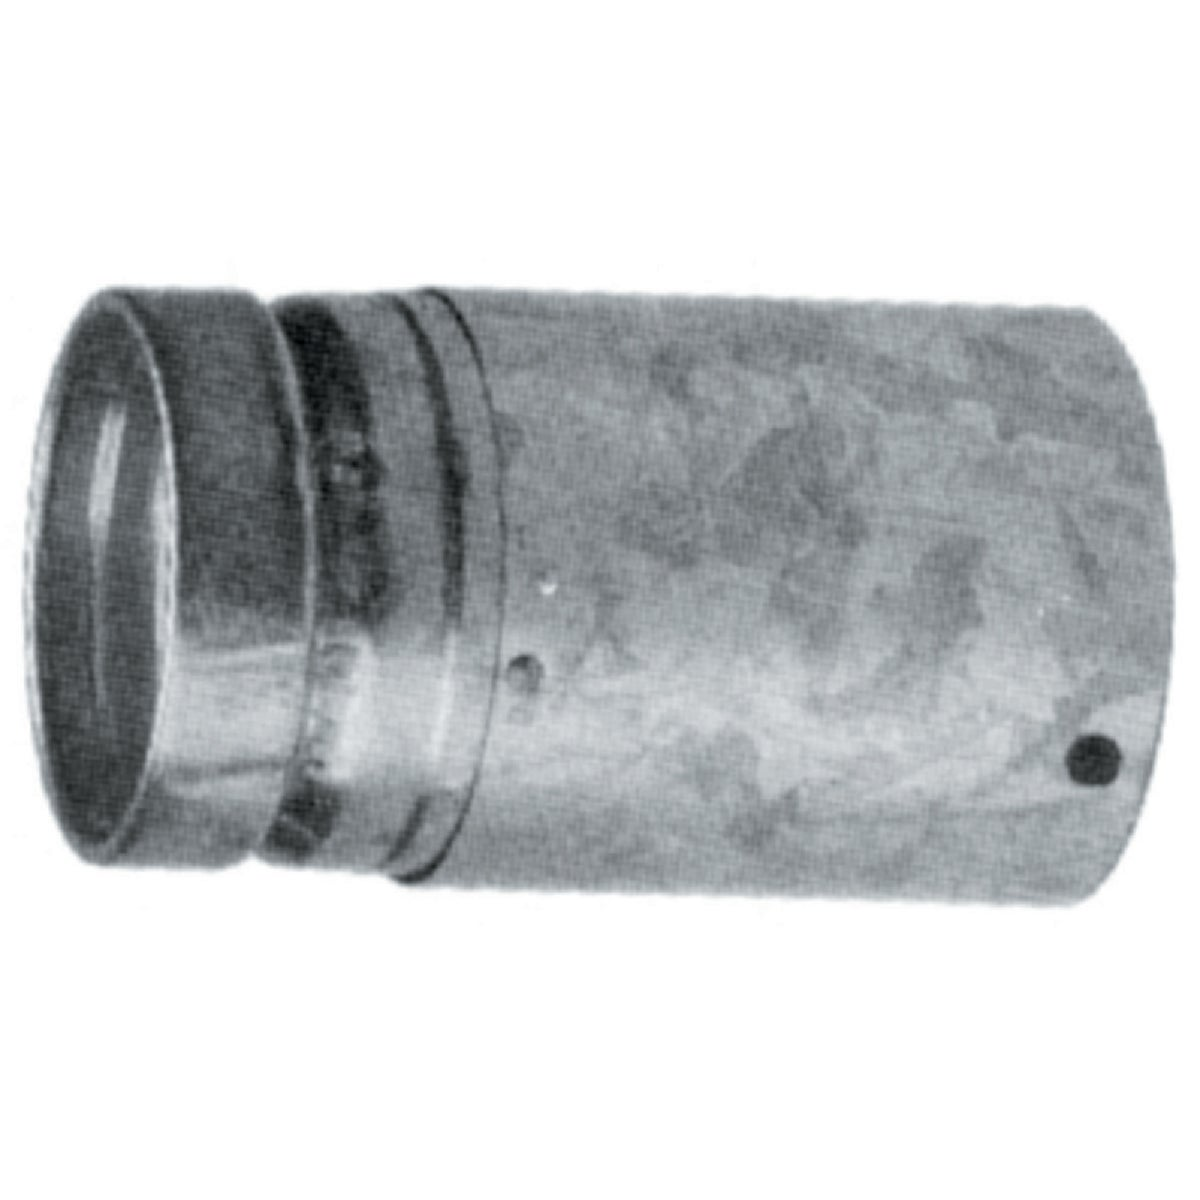 "6"" ADJ GAS VENT PIPE - 6RV-EZAJ12 by Selkirk Corporation"